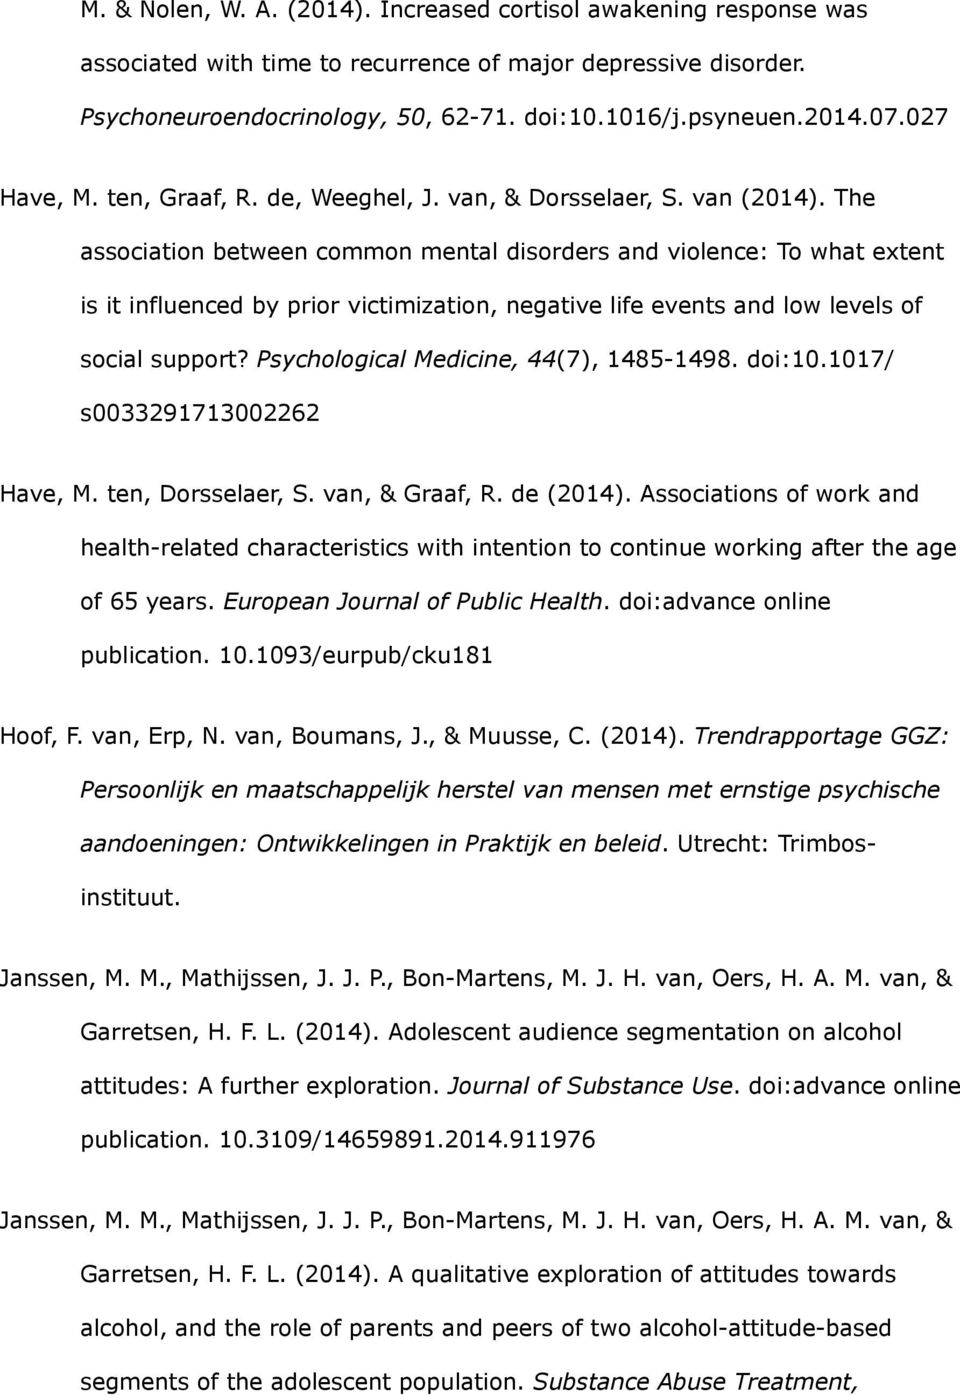 The association between common mental disorders and violence: To what extent is it influenced by prior victimization, negative life events and low levels of social support?